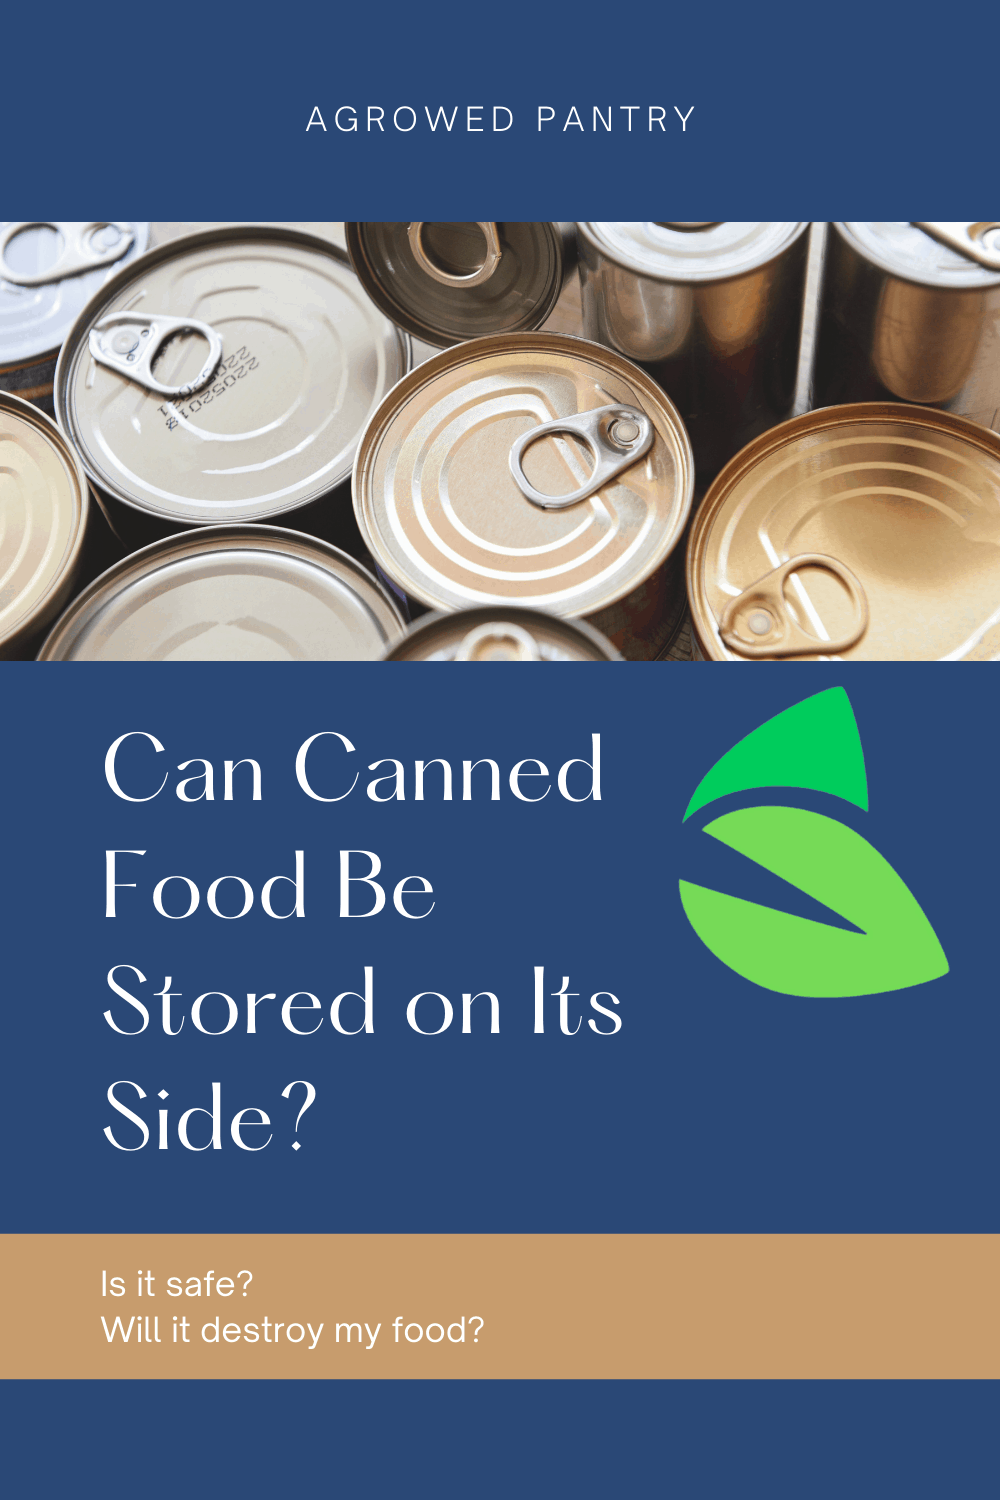 can canned food be stored on its side